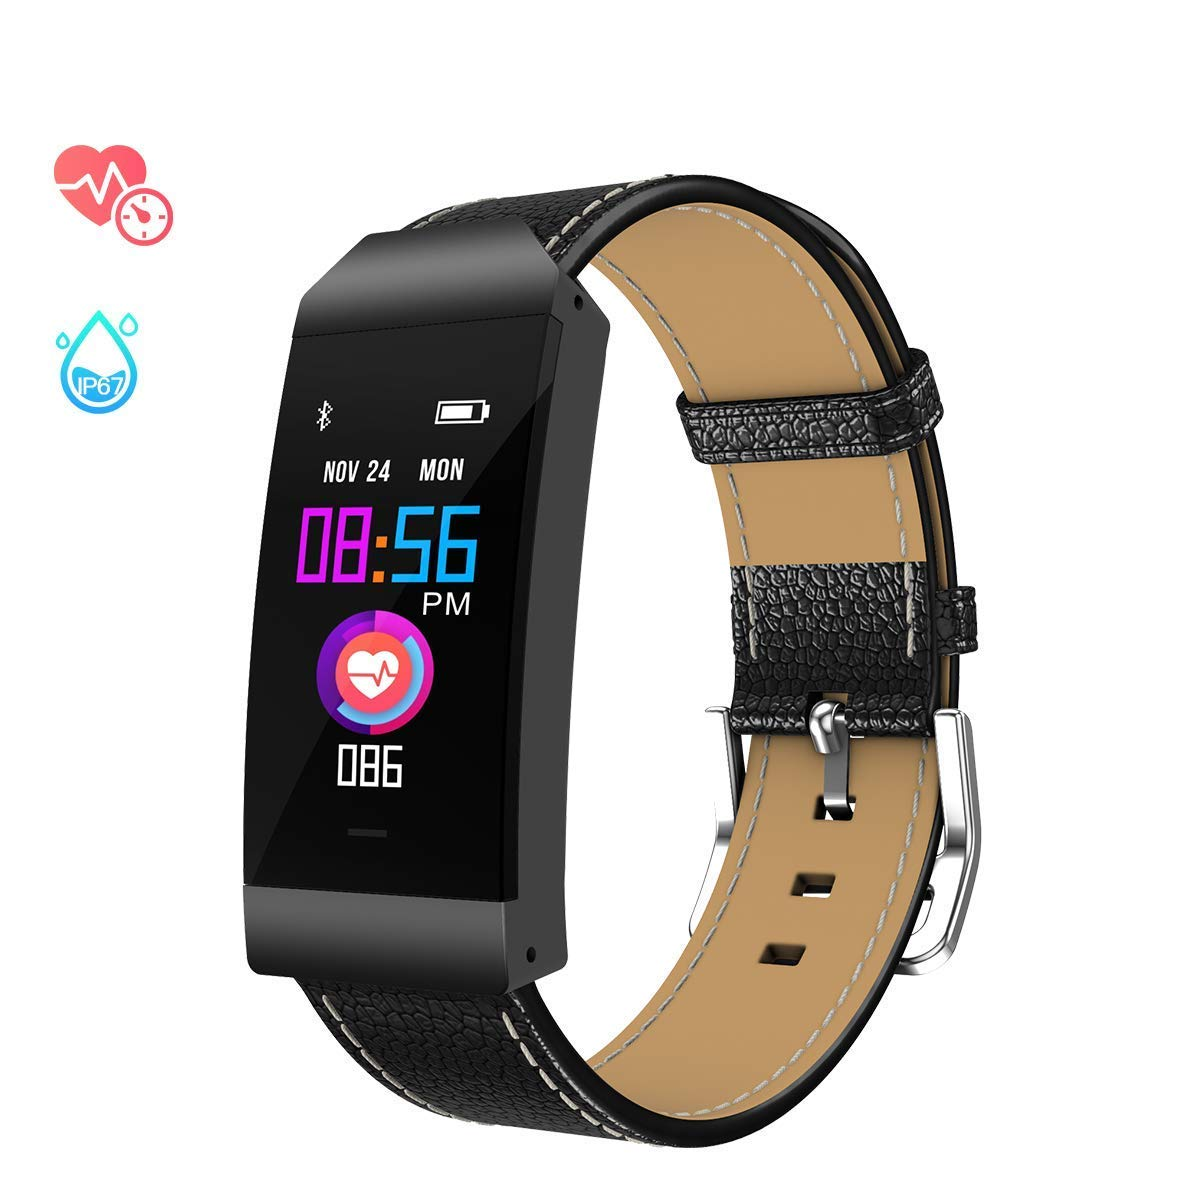 Fitness Tracker for women Sports Smartwatch with Heart Rate Monitor Waterproof IP67 Slim Leather Strap Fitness Watch Bluetooth Pedometer with Sleep Monitor Calorie Counter Smartwatch for iOS Android